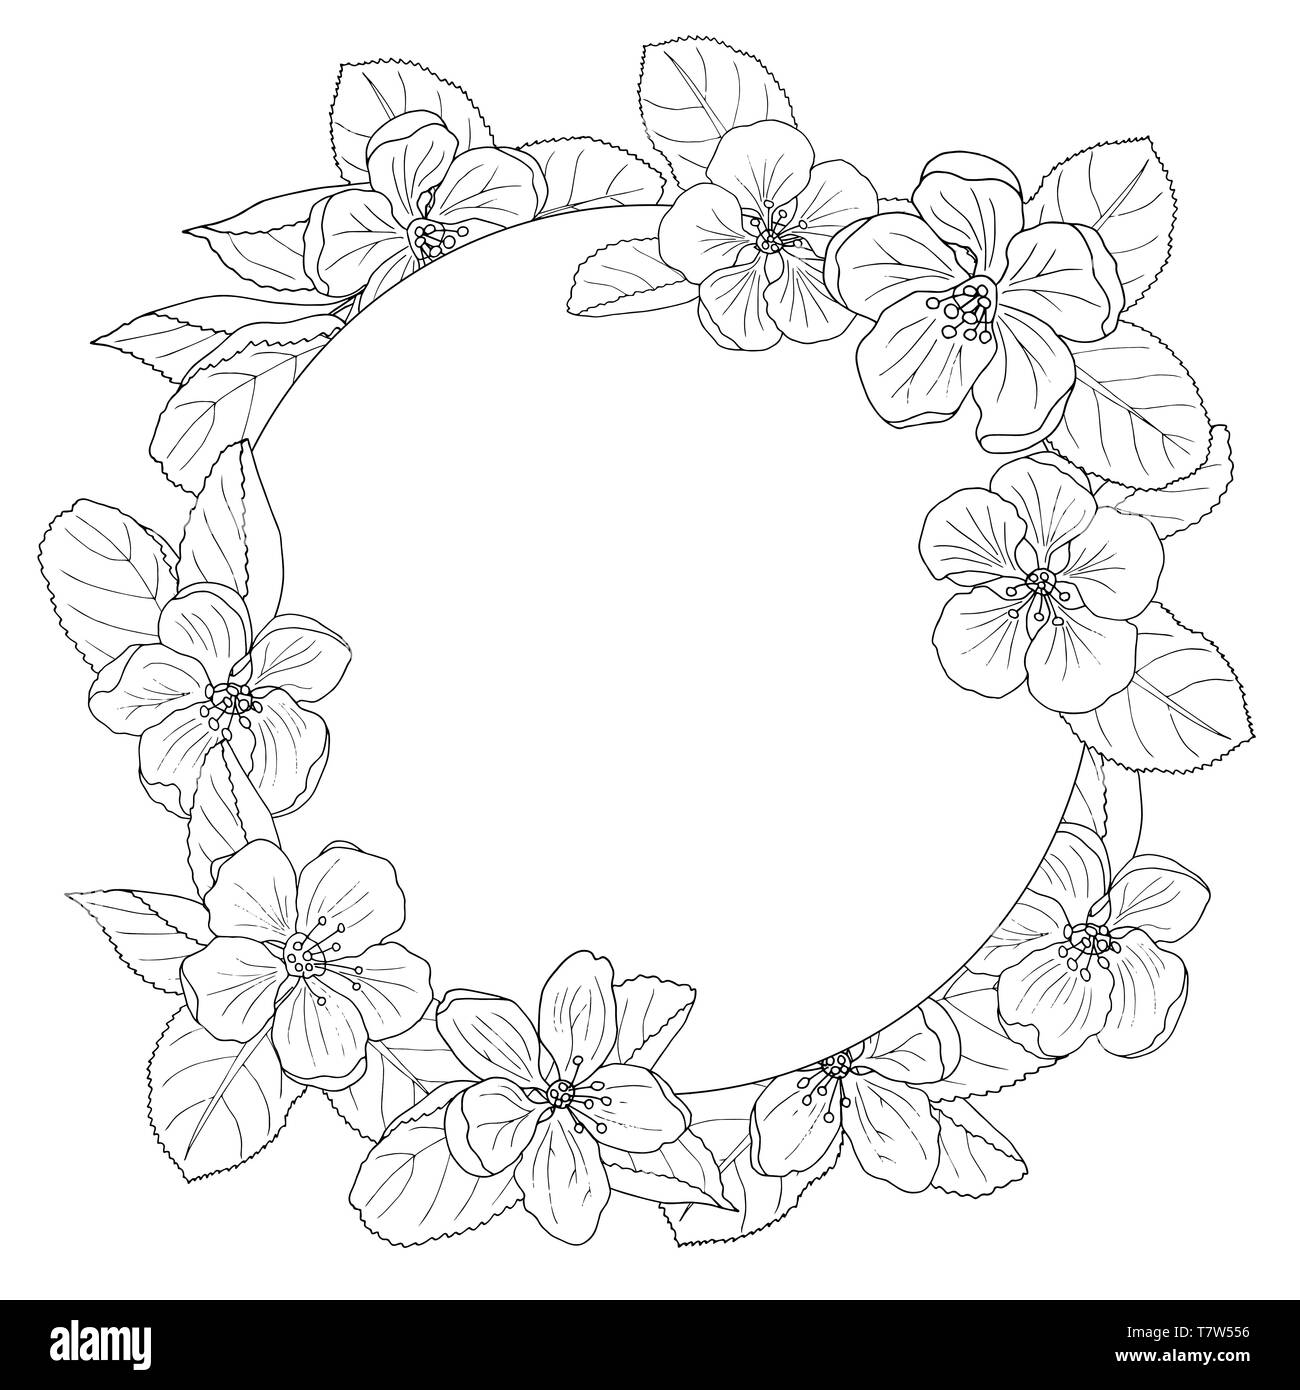 Doodling Paper Black and White Stock Photos & Images - Alamy